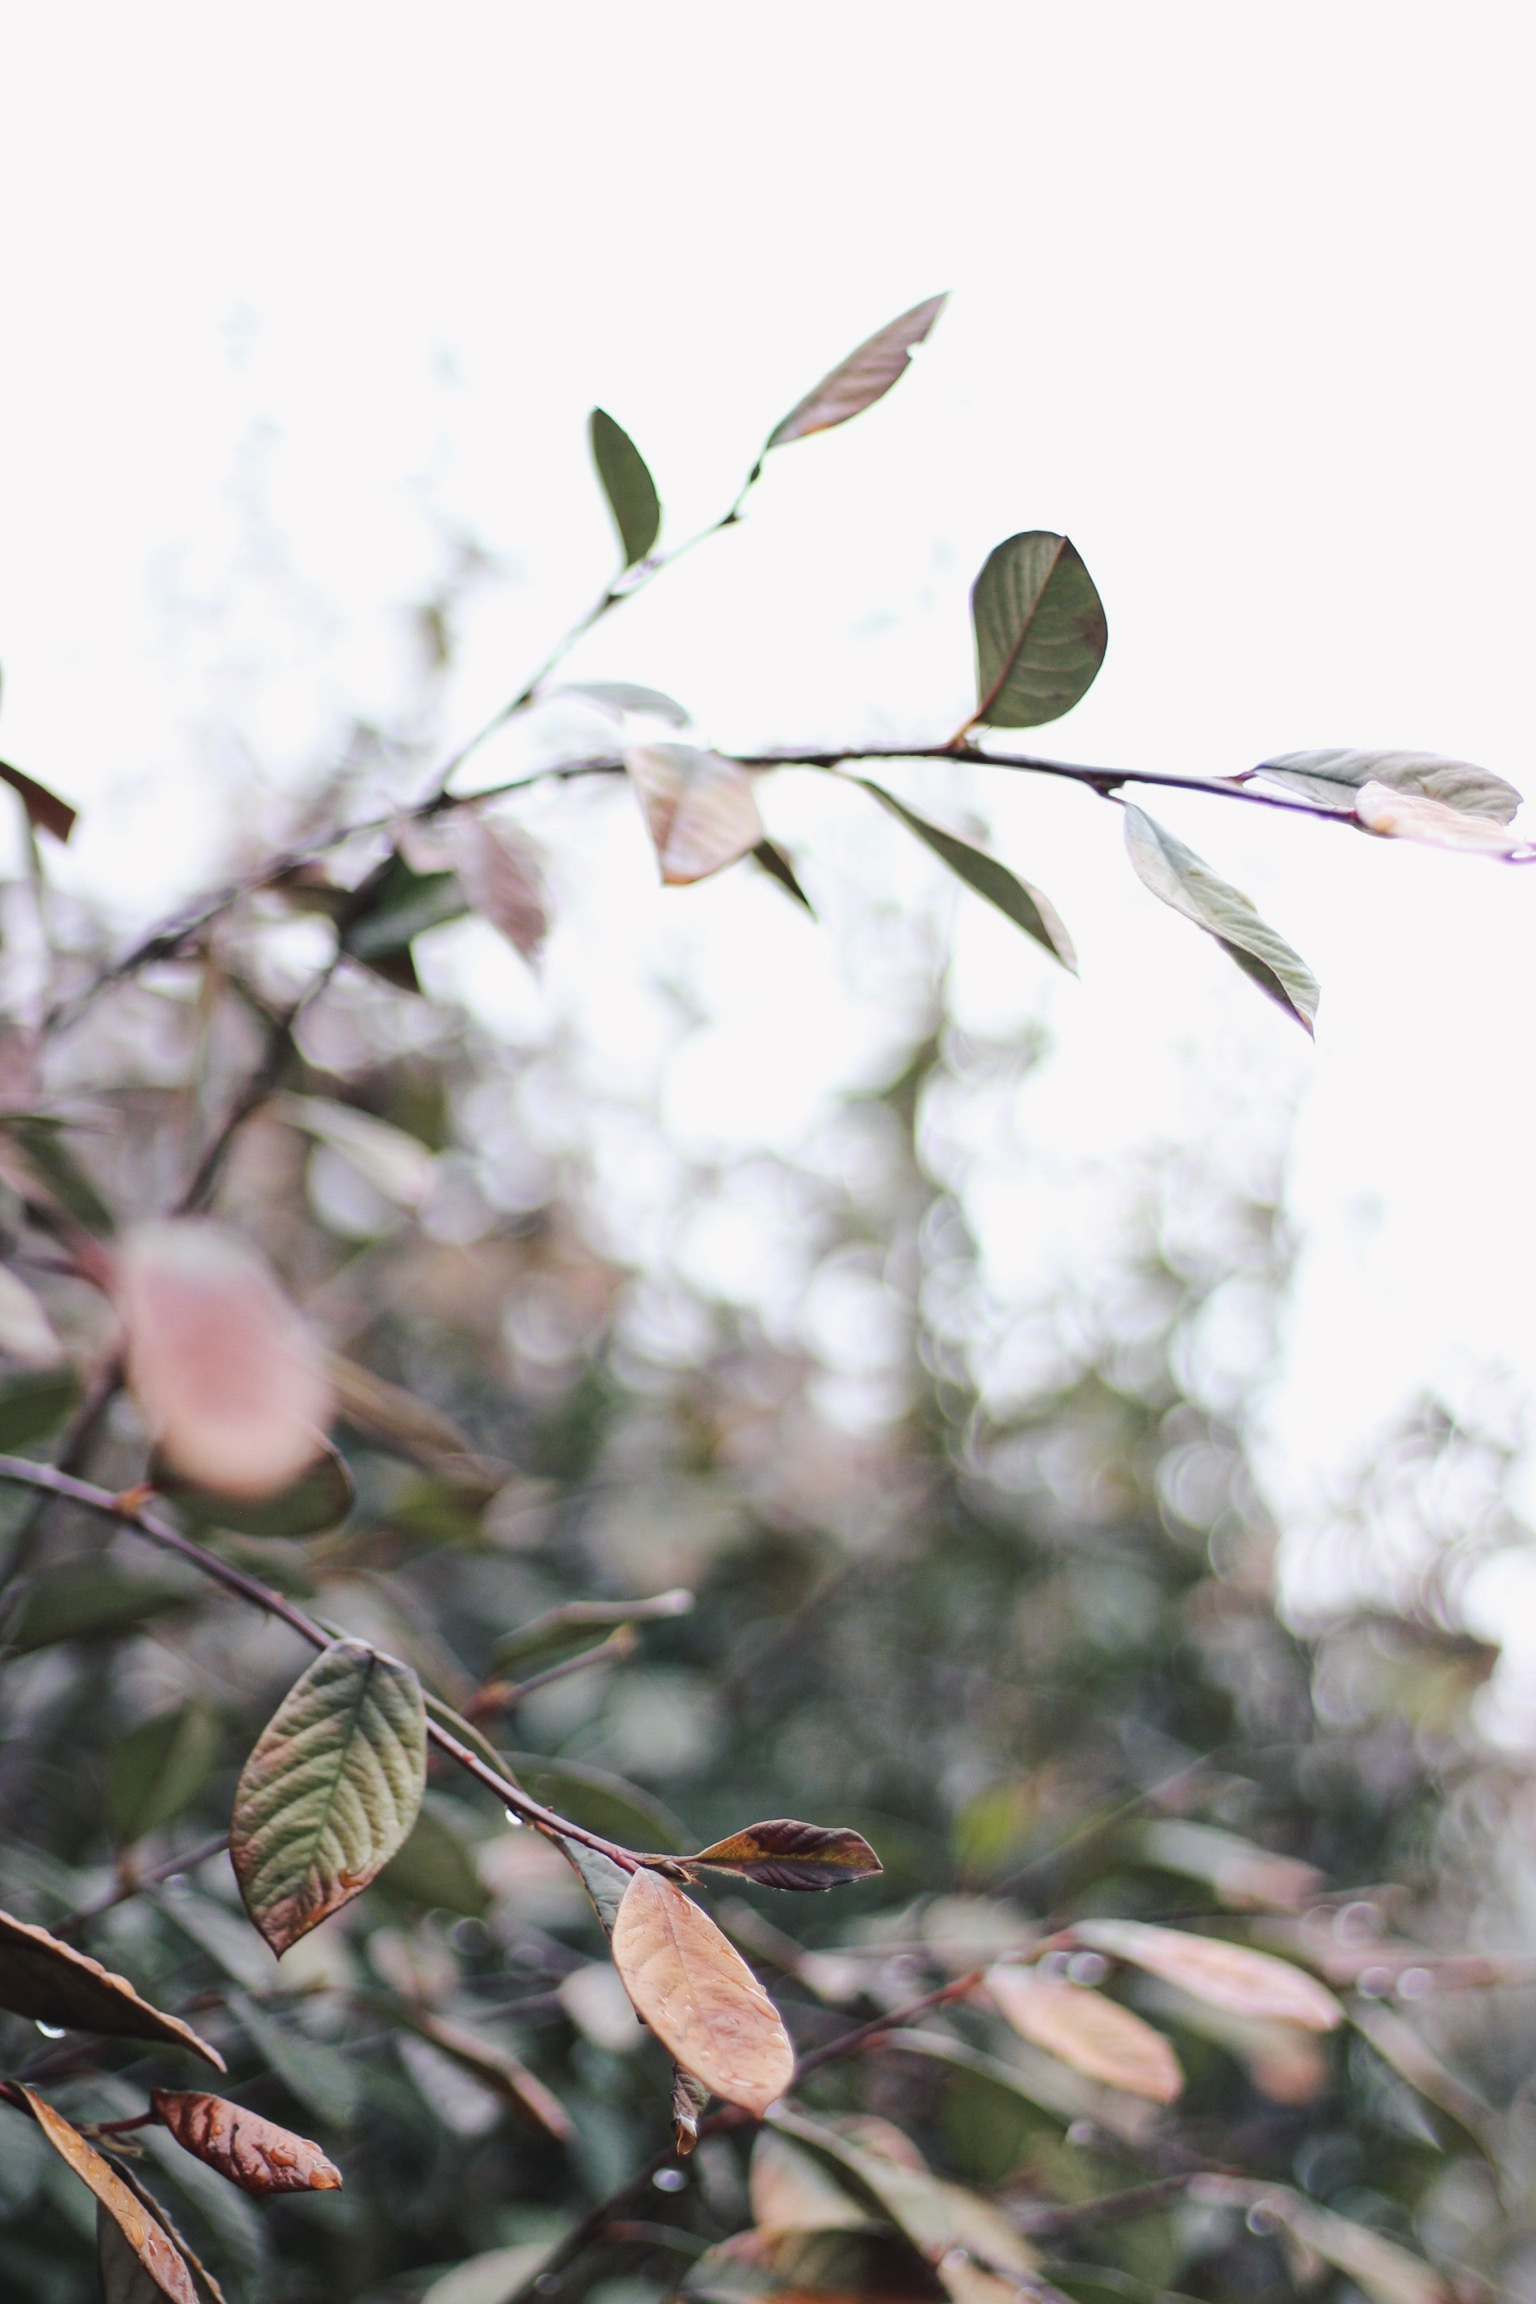 Green and pink leaves in Spring